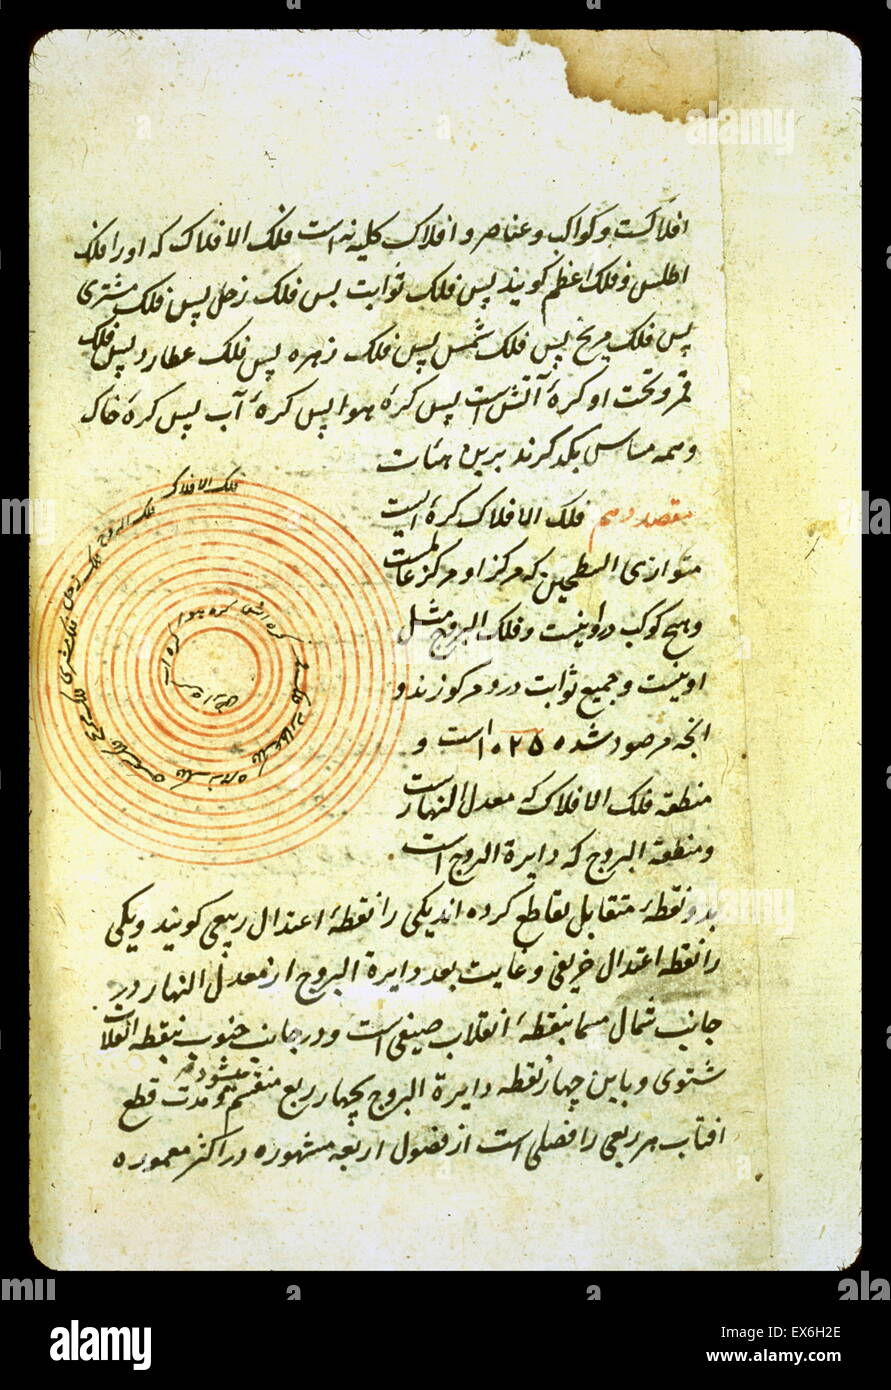 diagram of the heavenly spheres in an anonymous and untitled Persian treatise on astronomy. The copy was completed - Stock Image